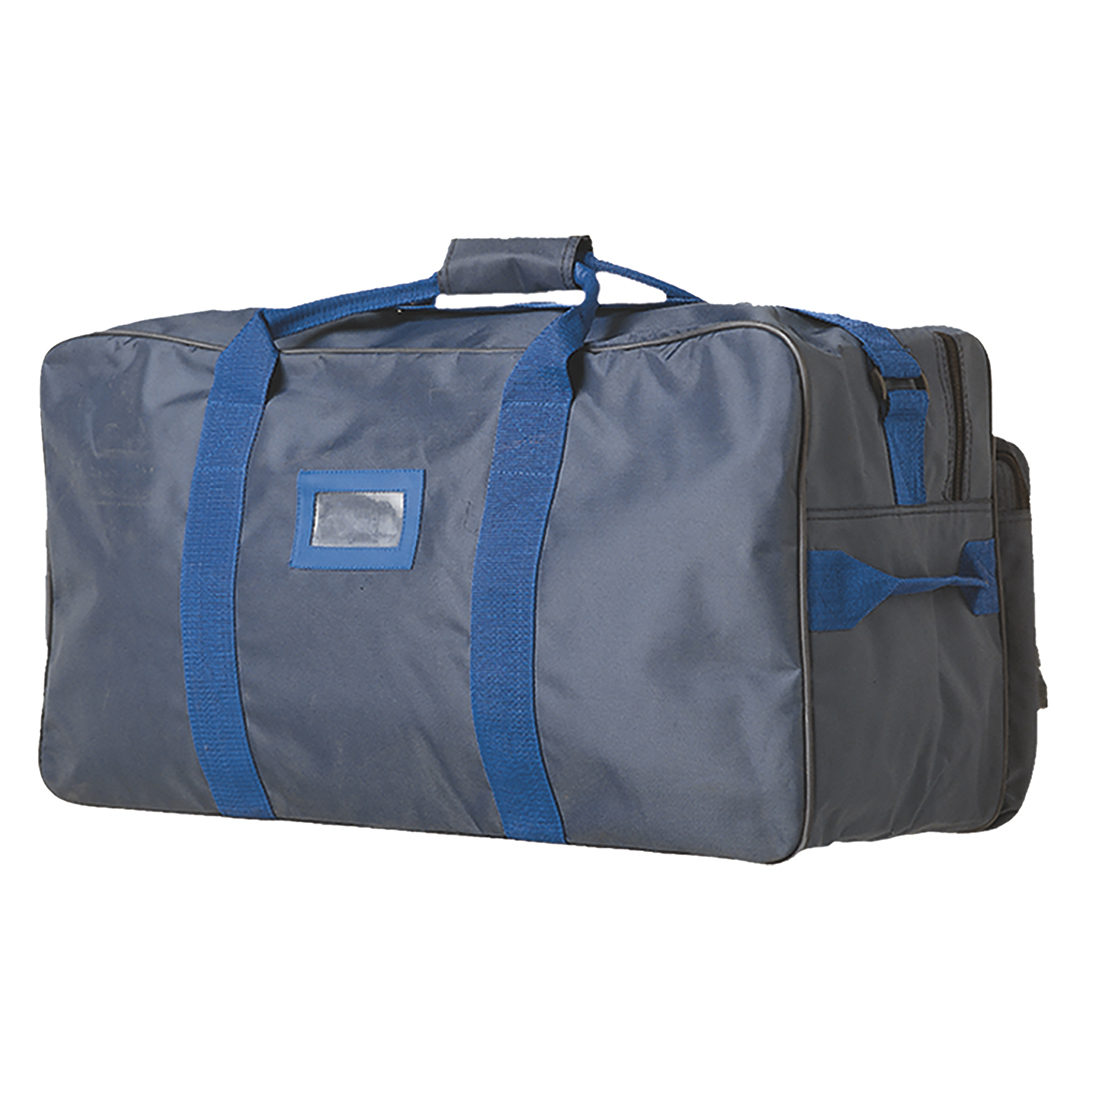 Portwest Travel Bag - B903